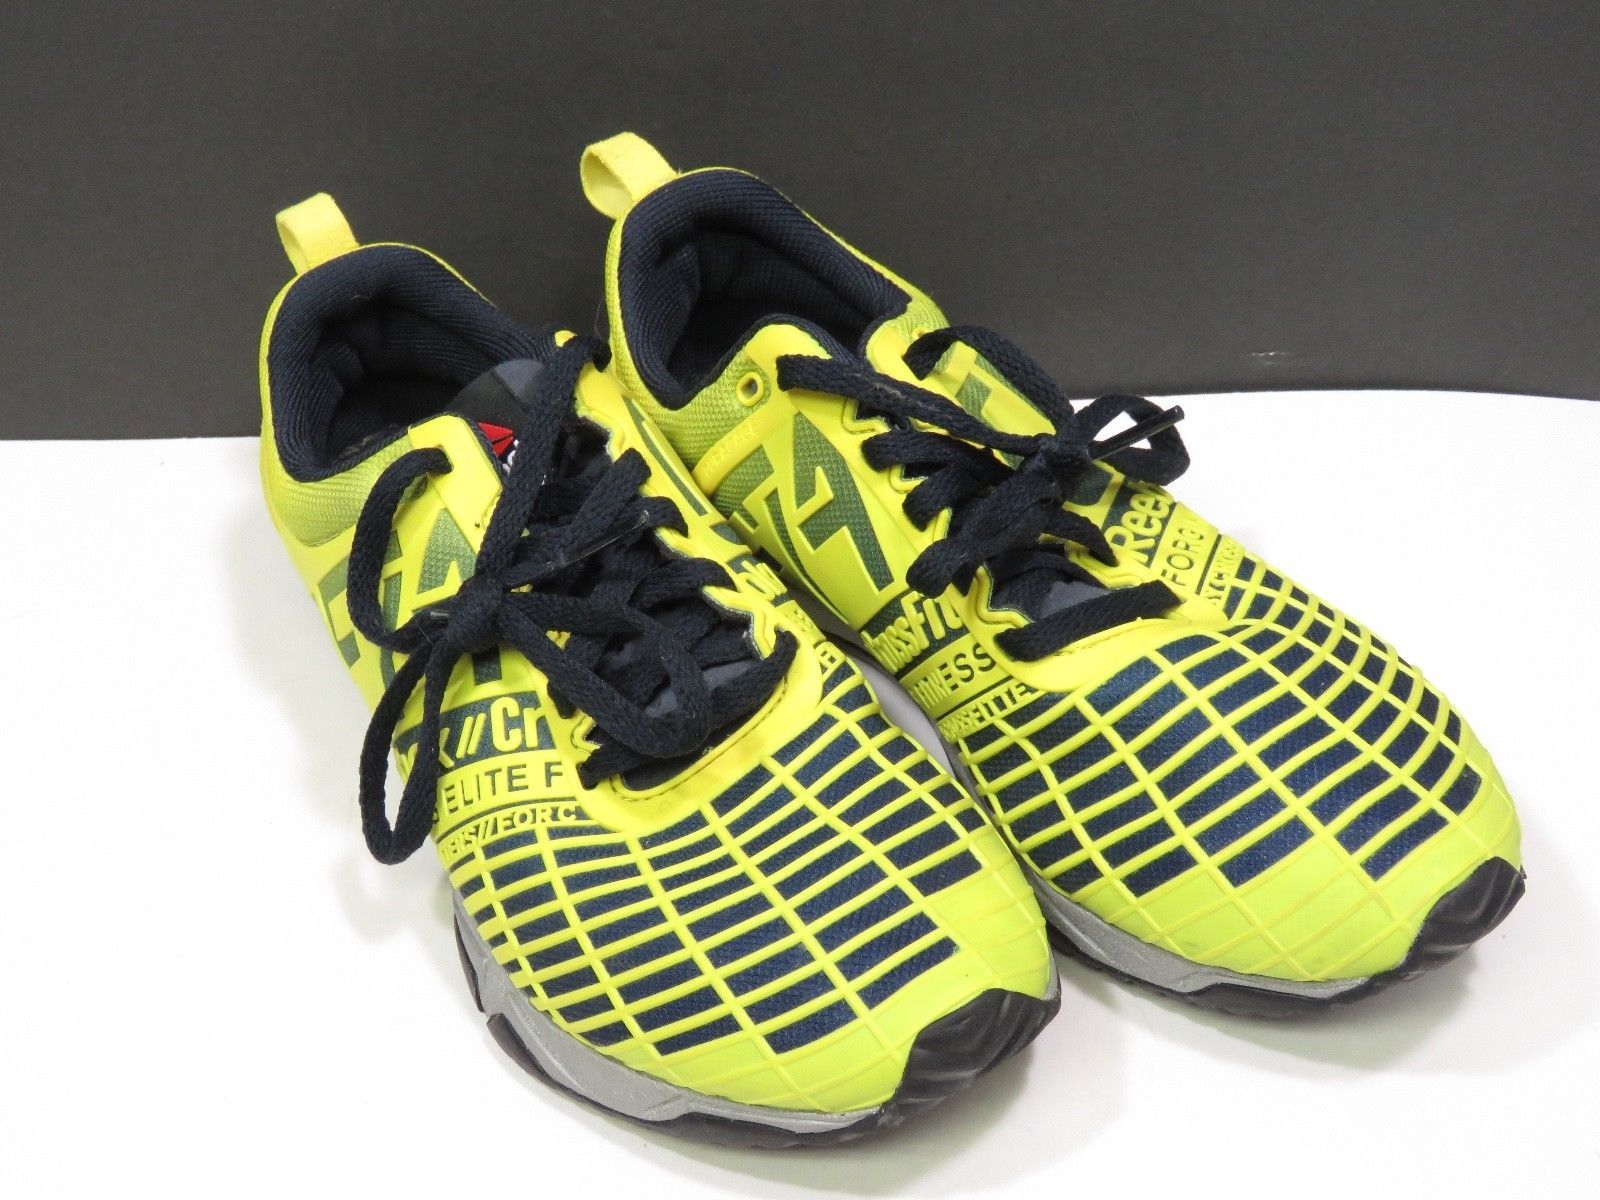 3ddd2a3ca95 Reebok Crossfit womens Size 6 Athletic Cross and similar items. 57